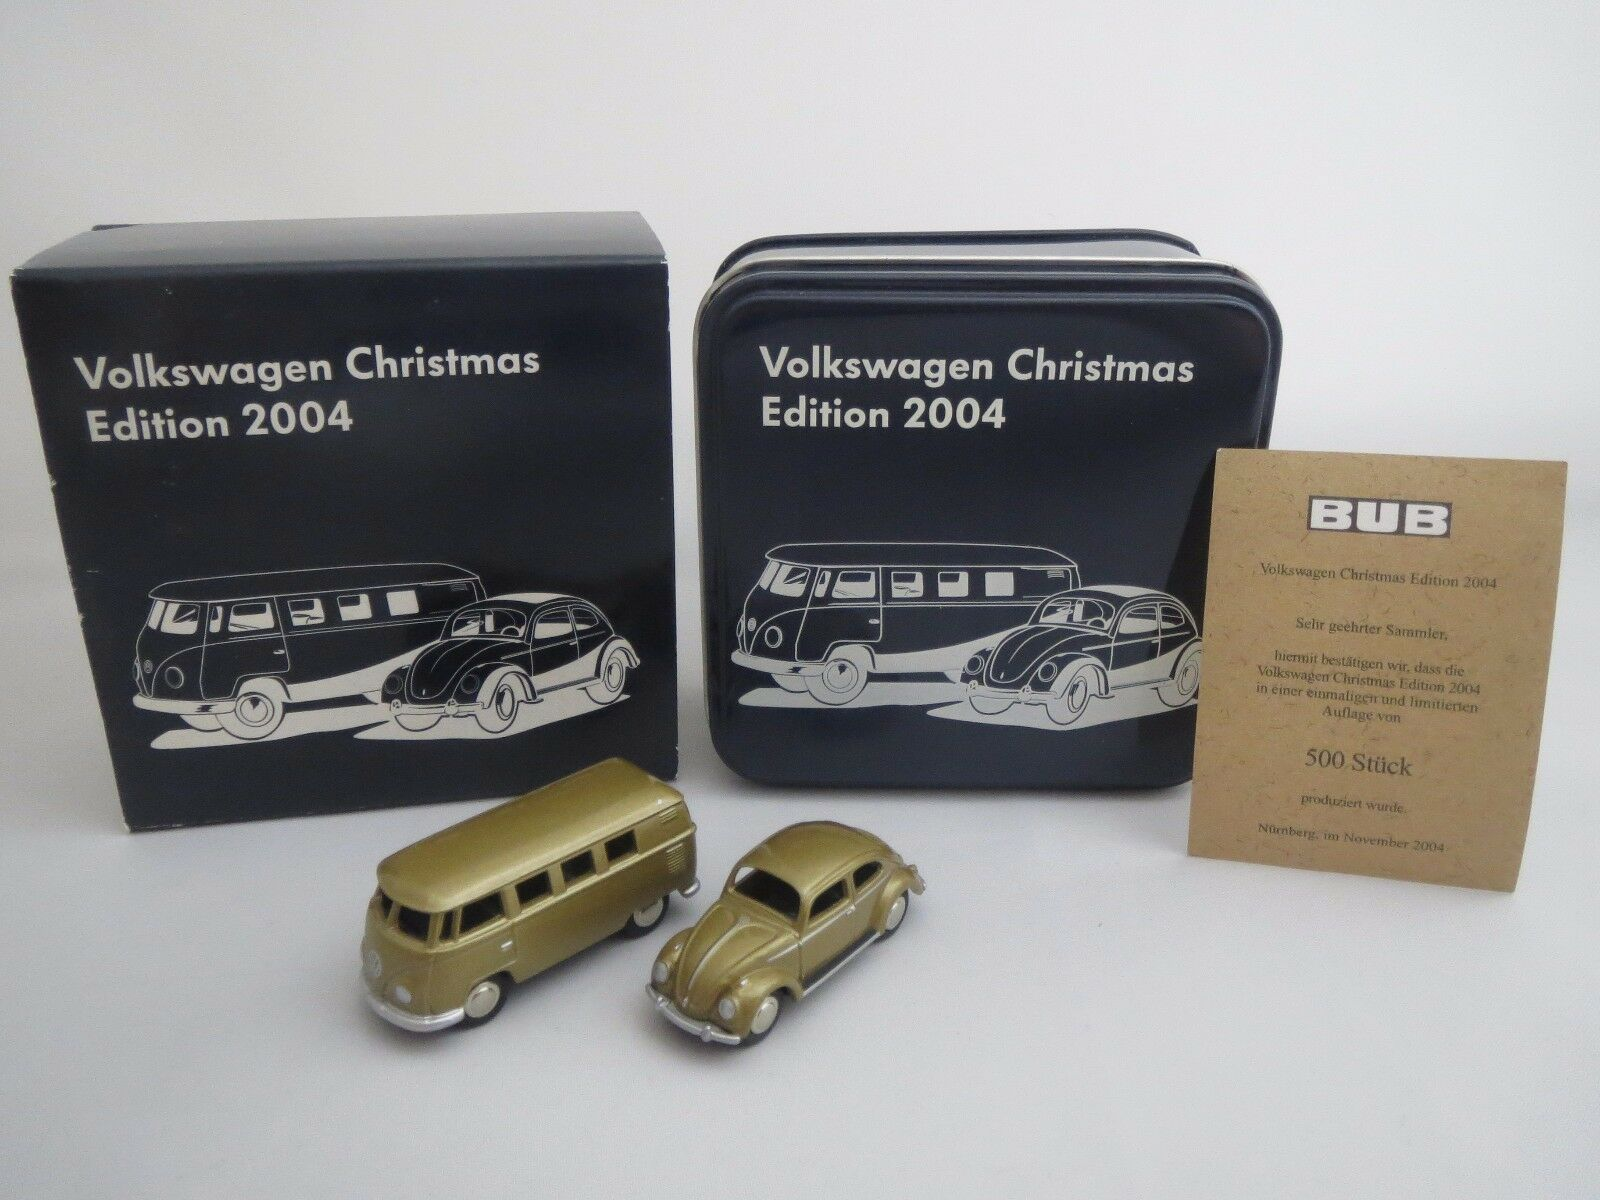 Bub VW Bus & VW Escarabajo  volkswagen Christmas Edition 2004  1 87 OVP